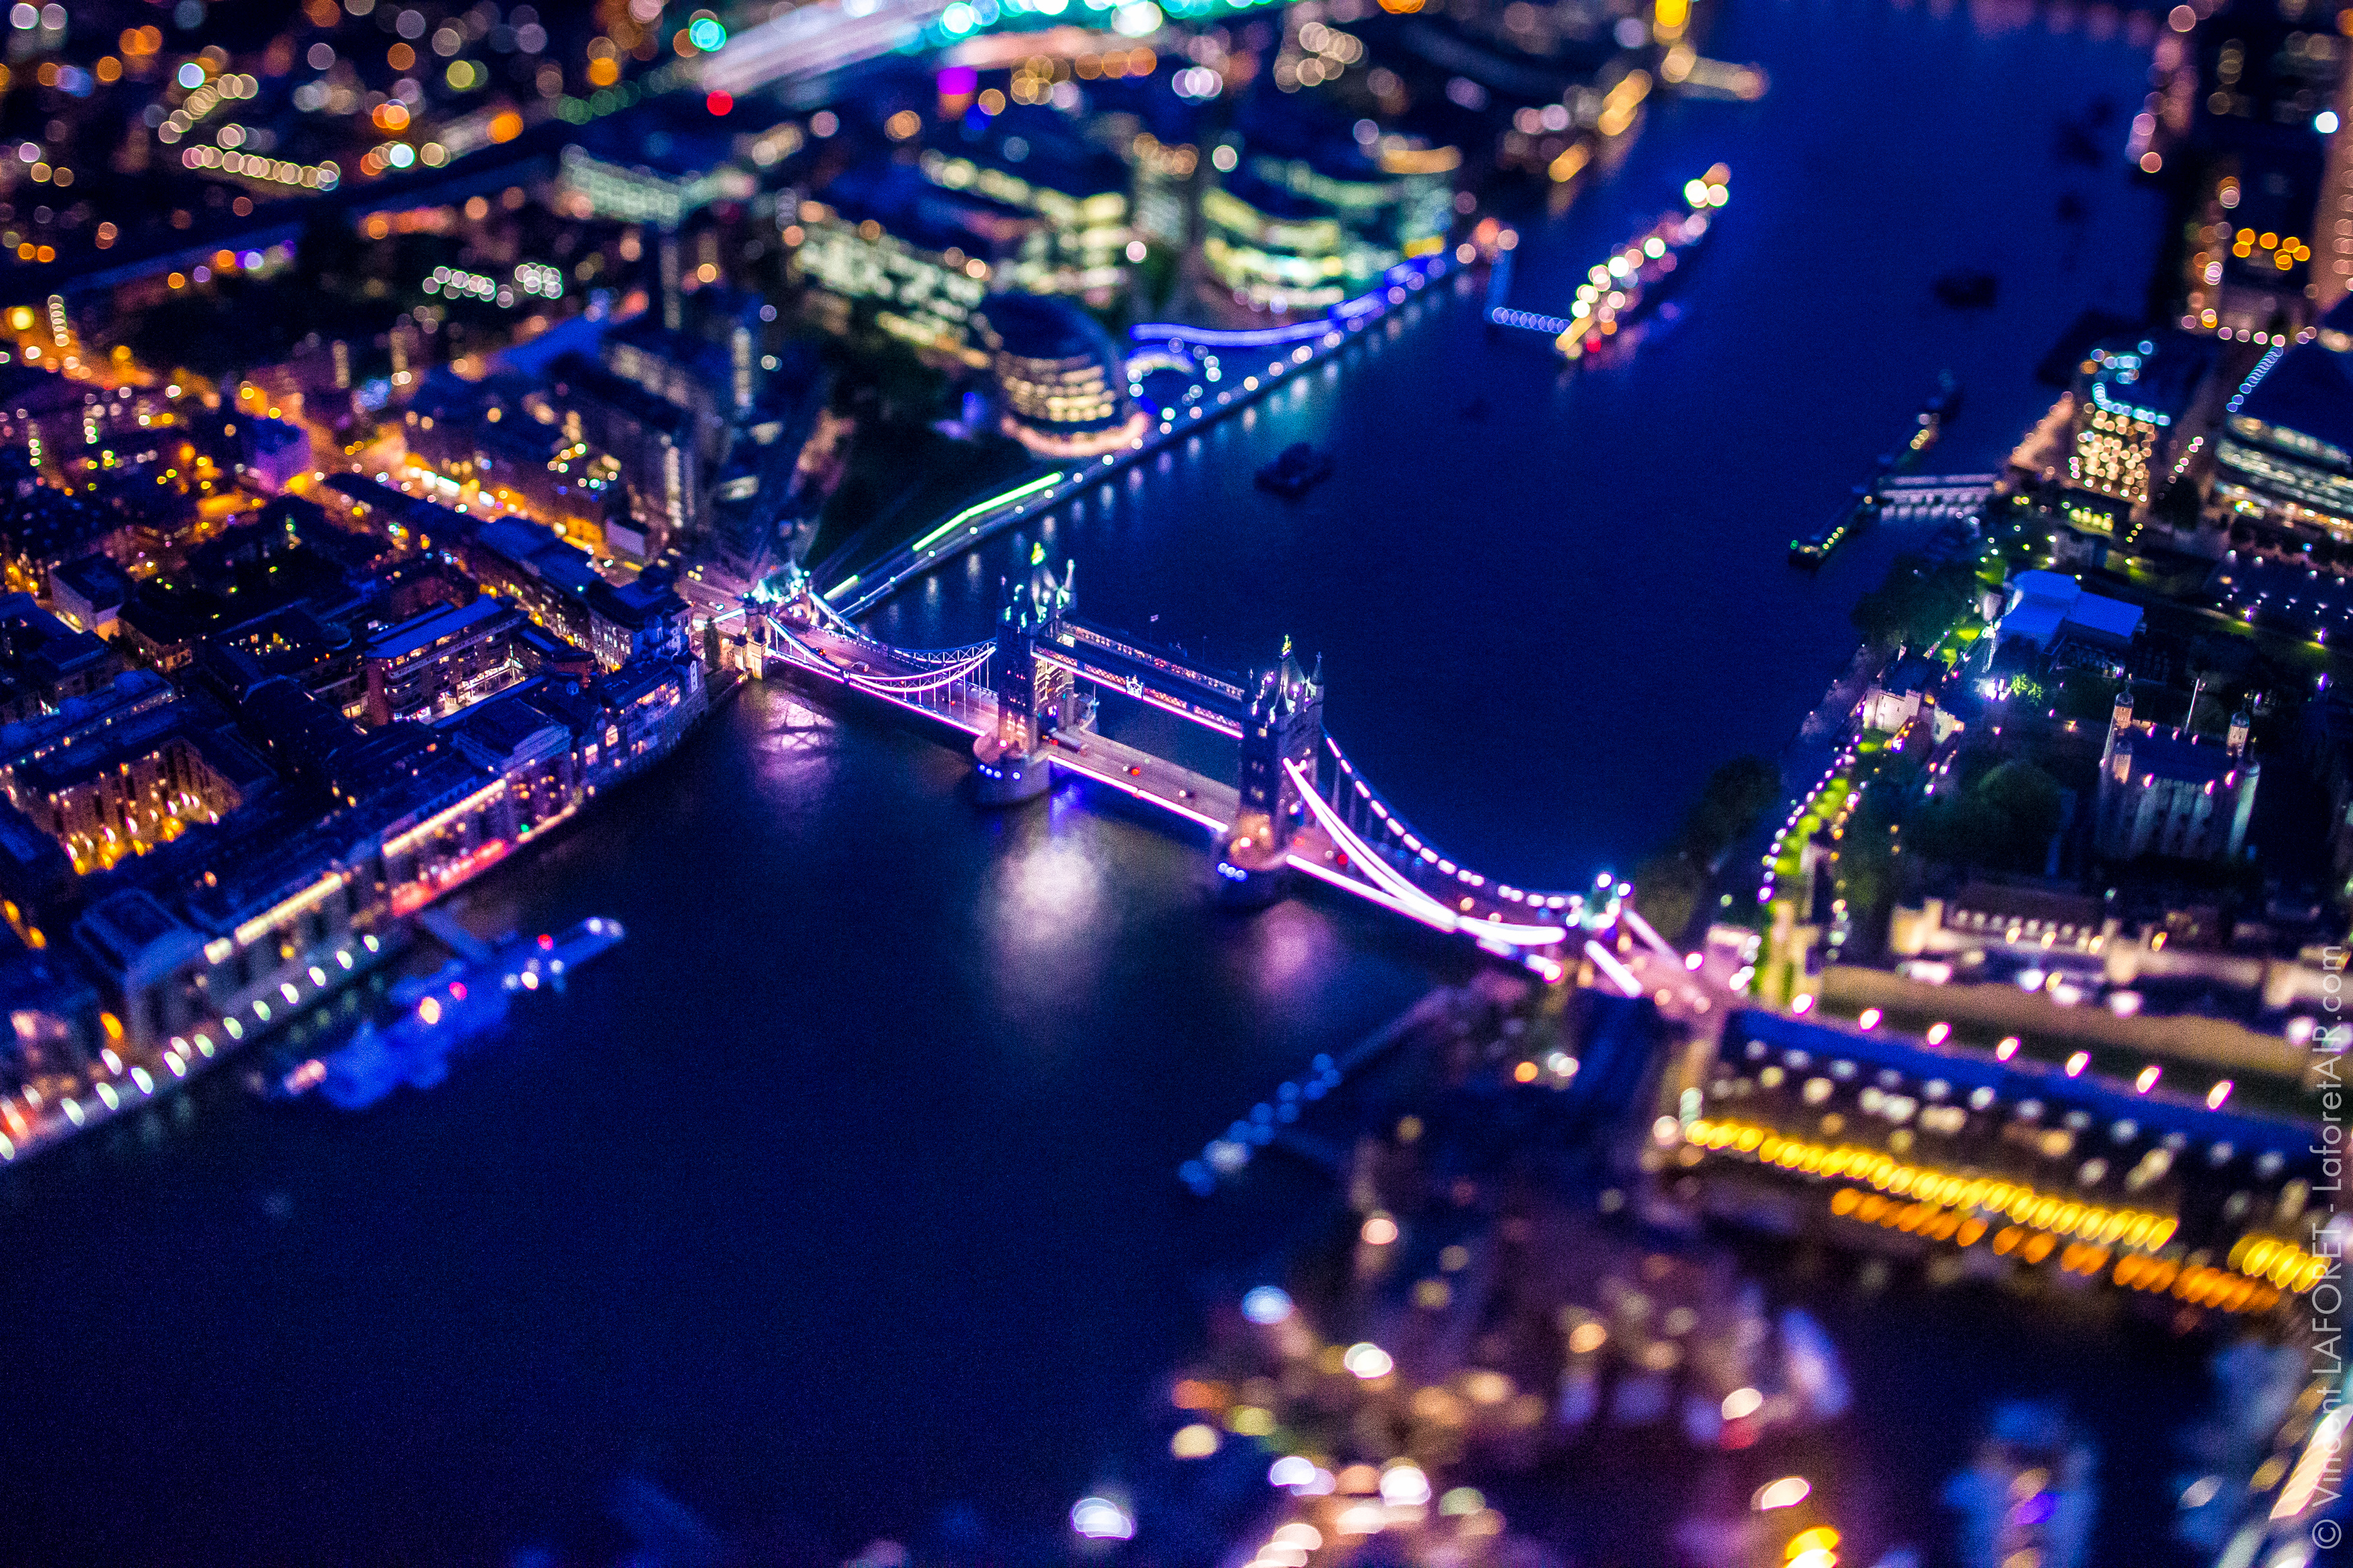 London from 7,500 feet: Vincent Laforet's amazing cityscapes